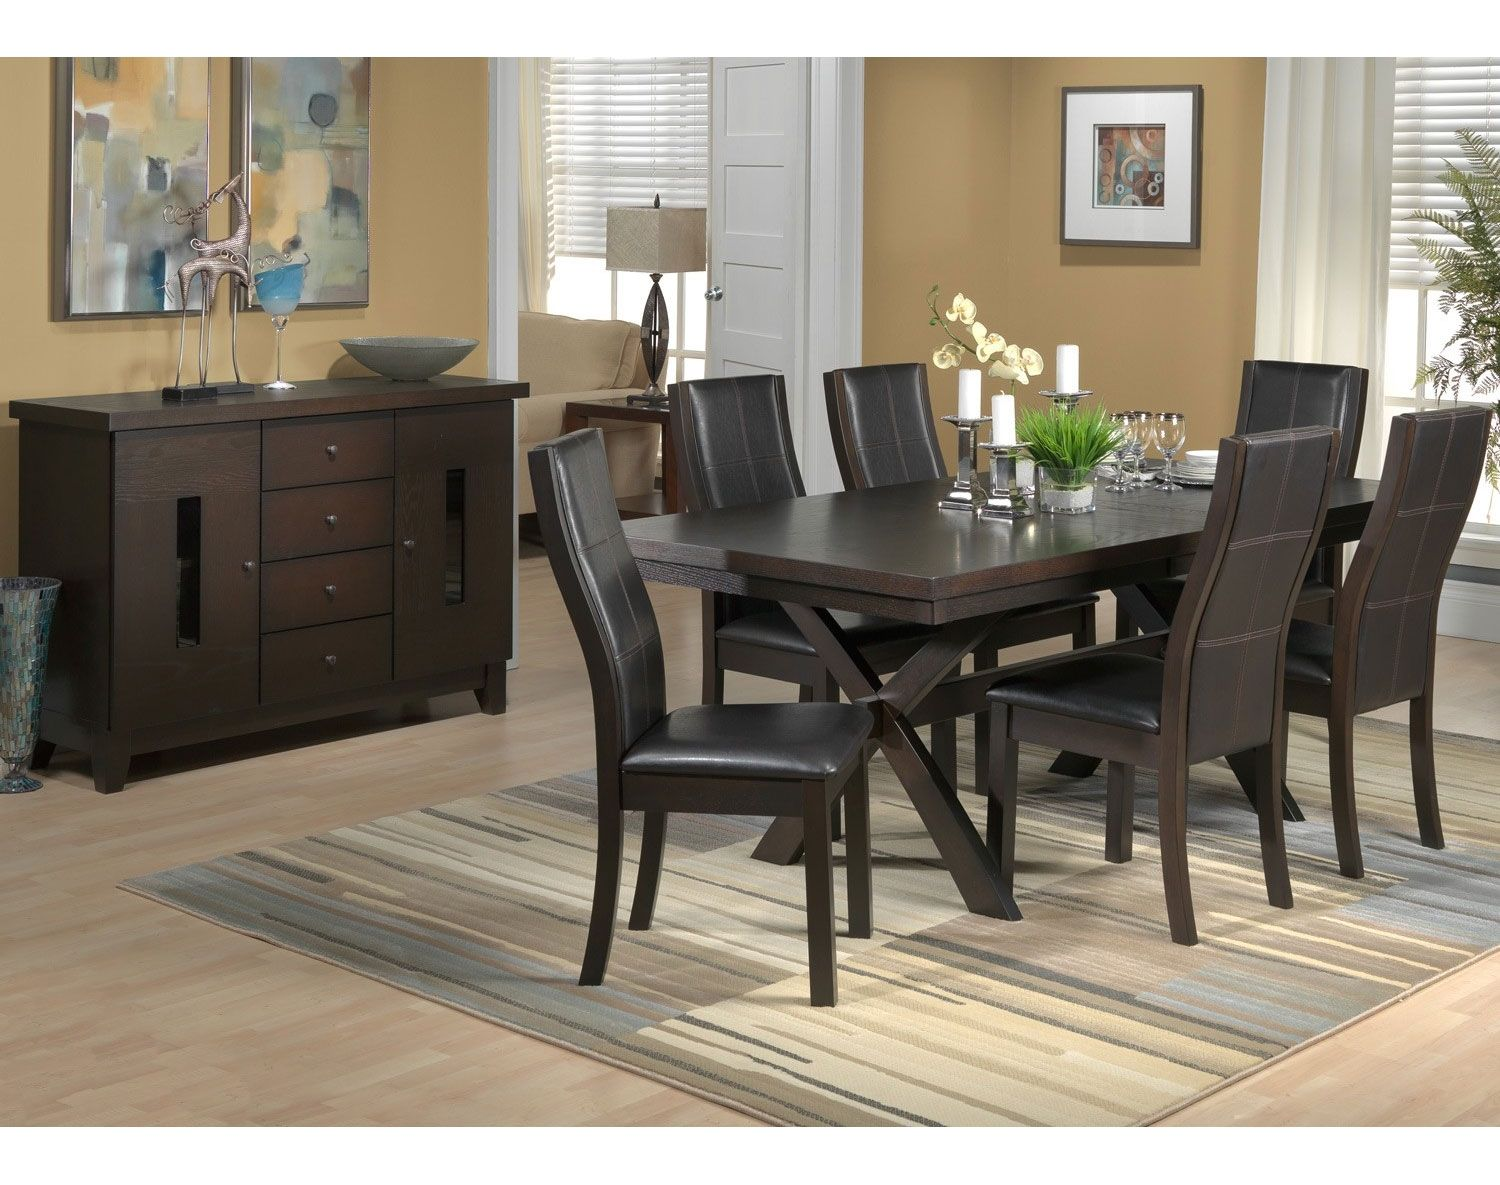 Dining Room Furniture Urban Splendor 7 Pc Package Ideas For The House Pinterest Sets And Set